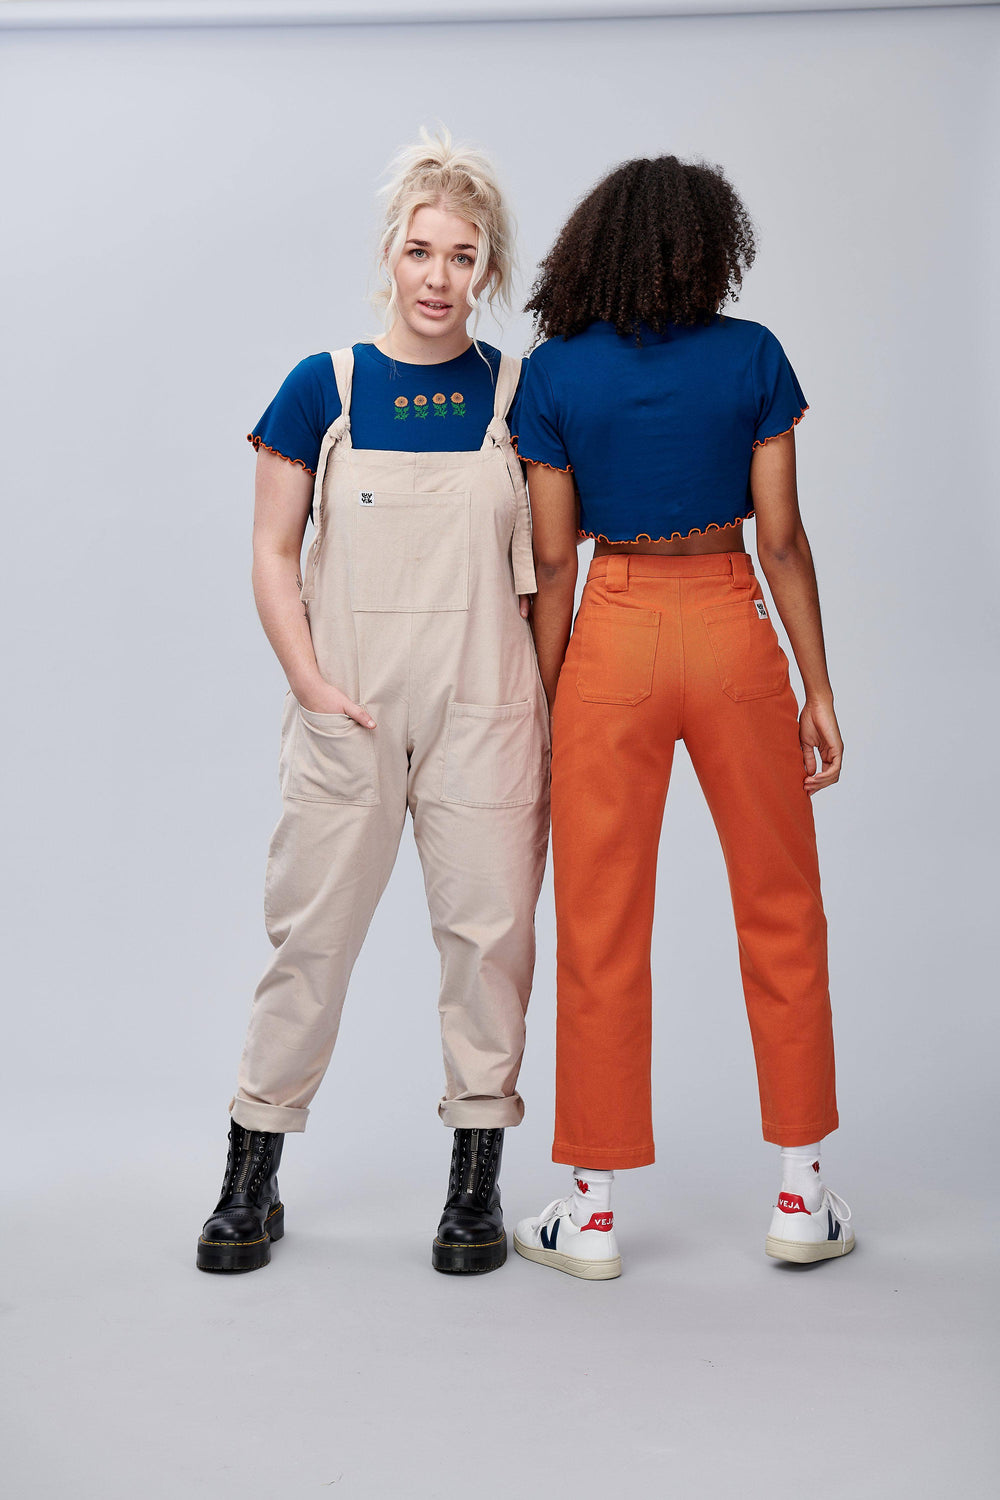 Lucy & Yak Tops 'Greta' Lettuce Hem Sunflower Cropped Tee in Navy